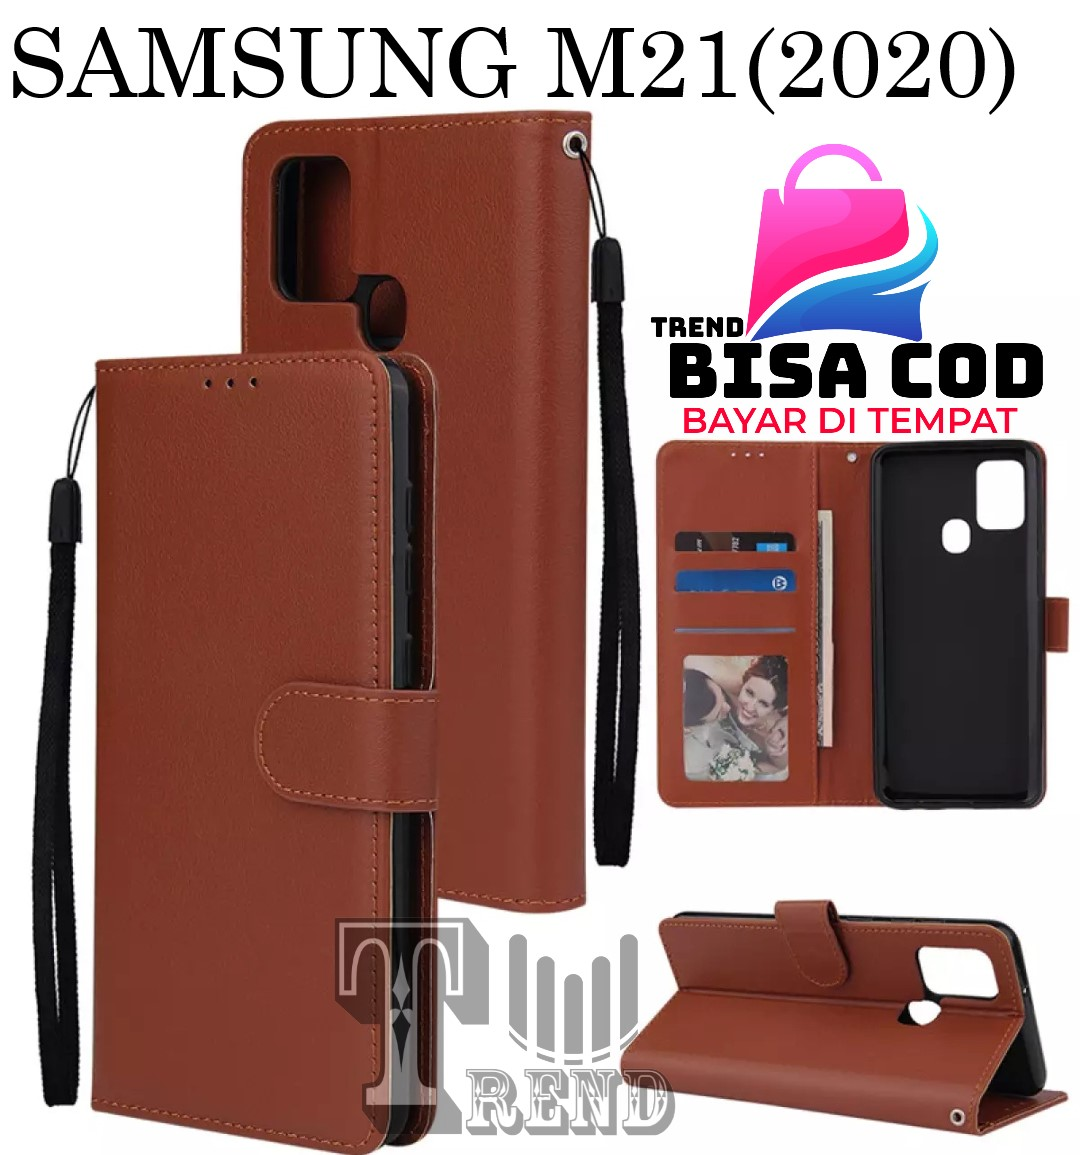 leather case flip untuk samsung m21 (2020) -flip  wallet case kulit samsung m21 (2020)- casing dompet-flip cover leather-sarung buku hp